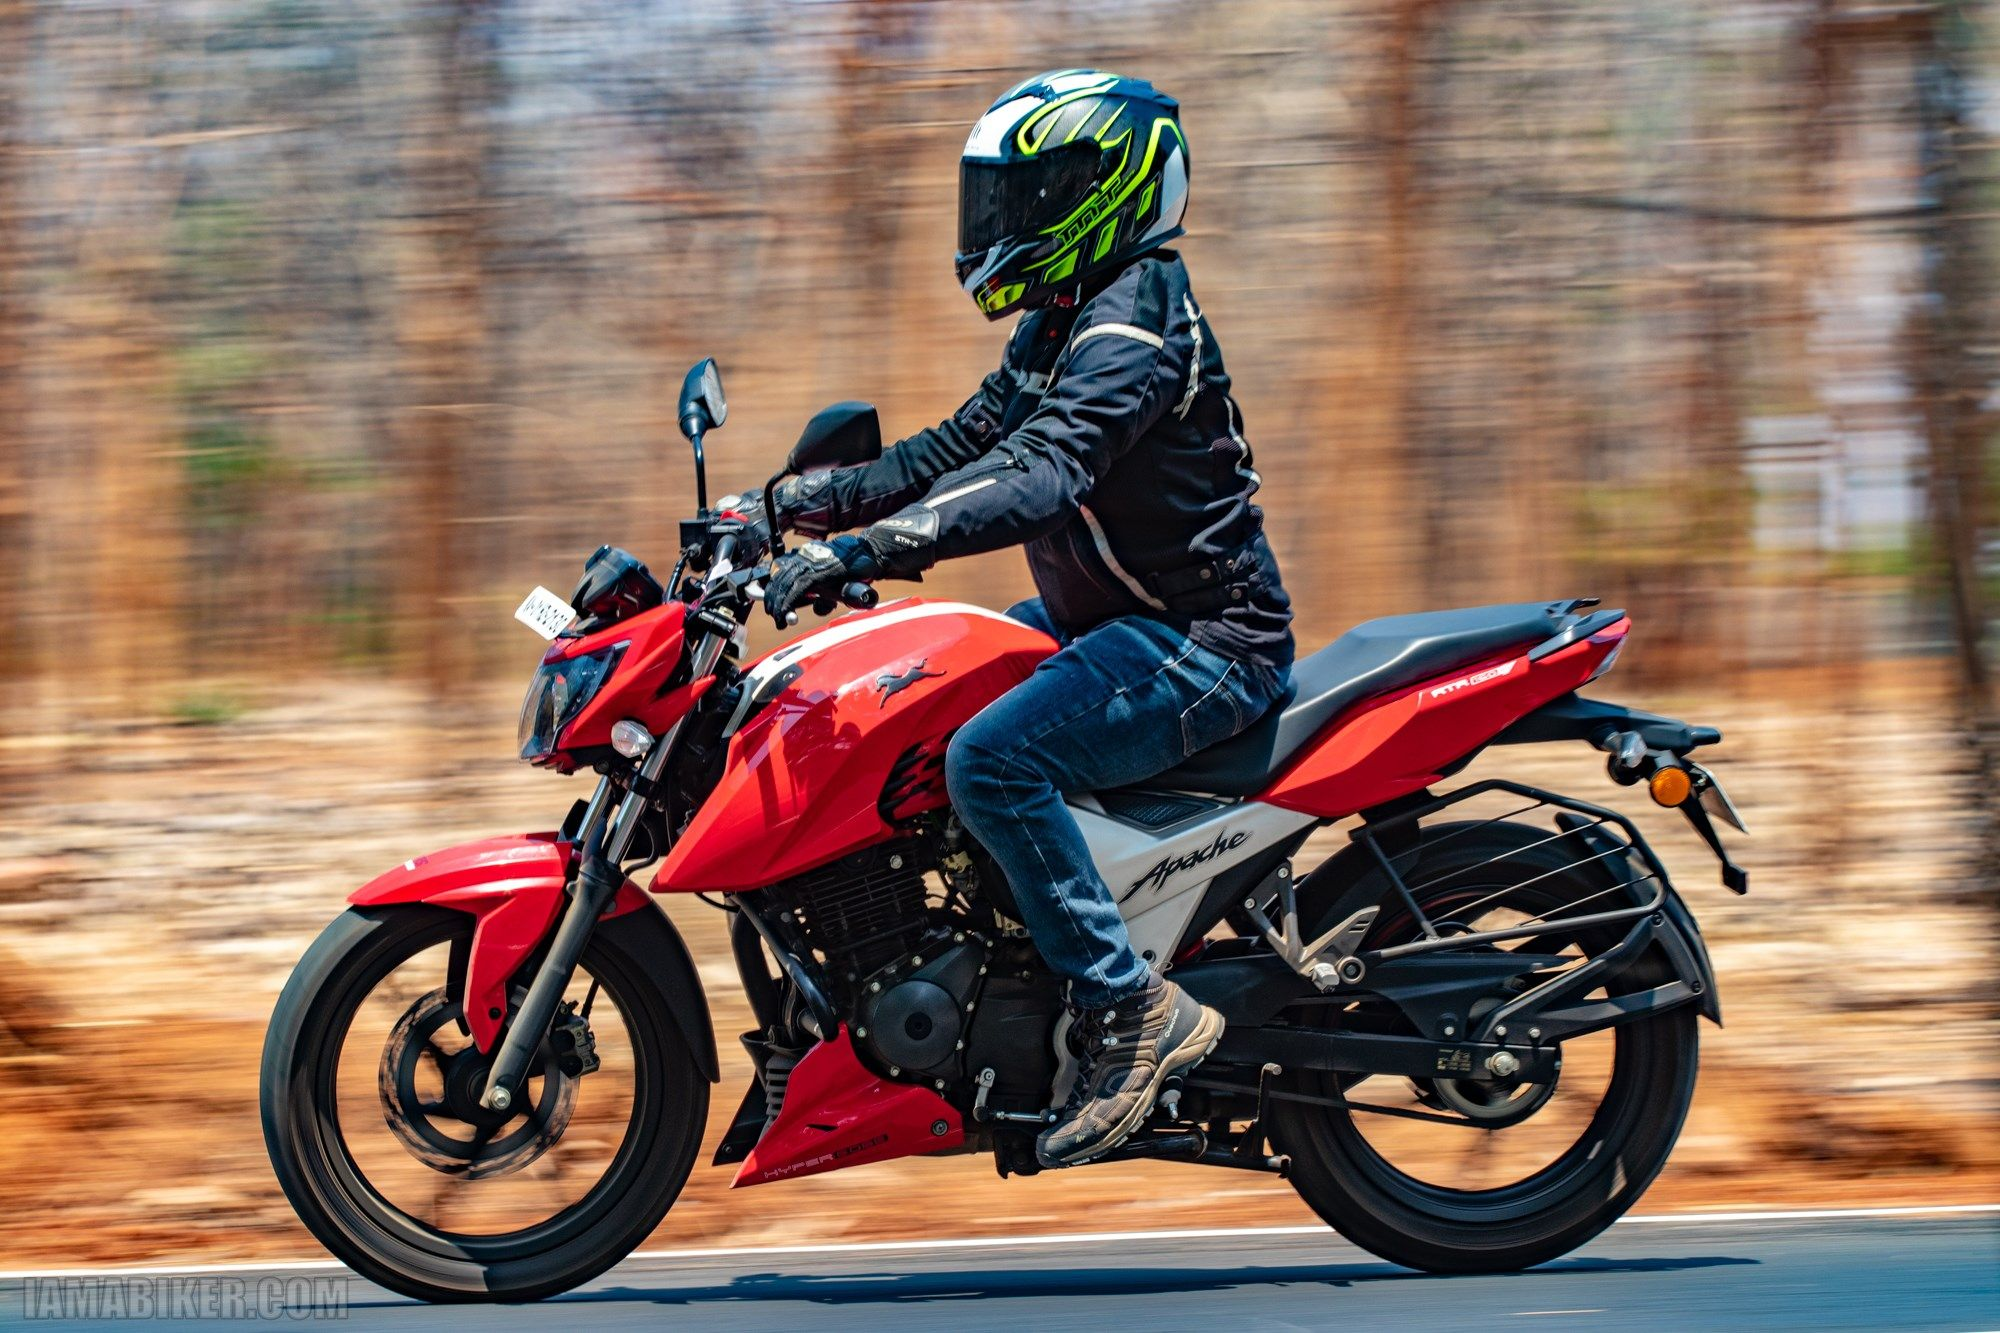 Tvs Apache Rtr 160 4v Road Review True Little Brother To The 200 Apache Rtr Motorcycle News